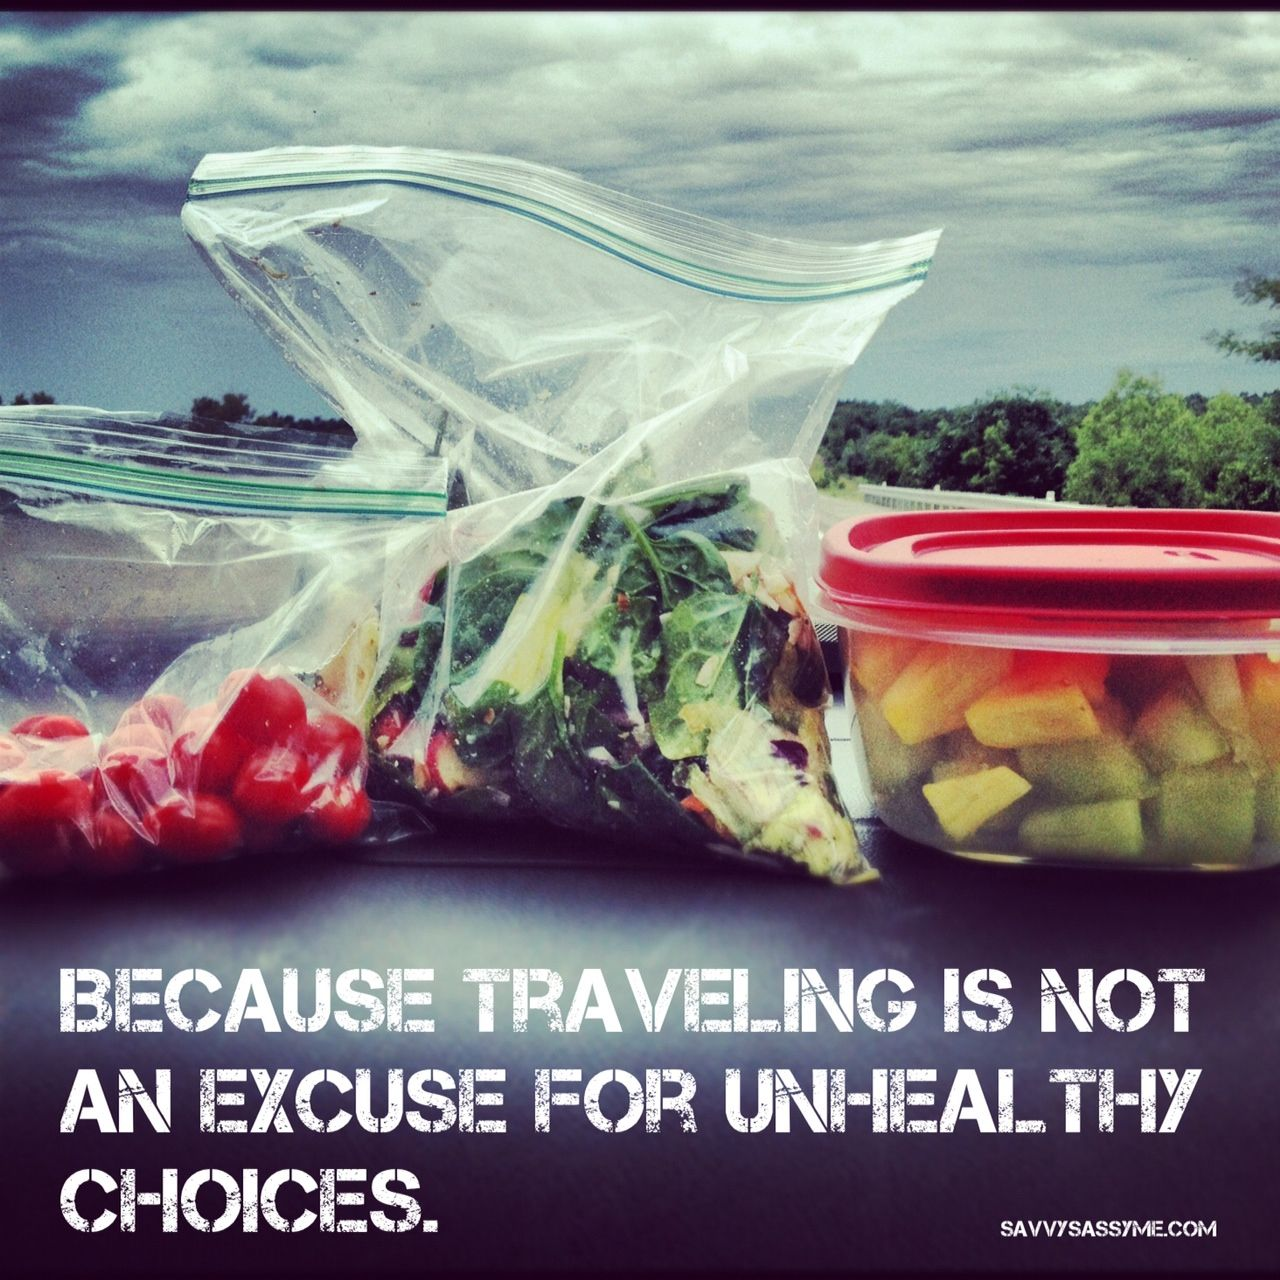 How Can I Eat Healthy While Traveling